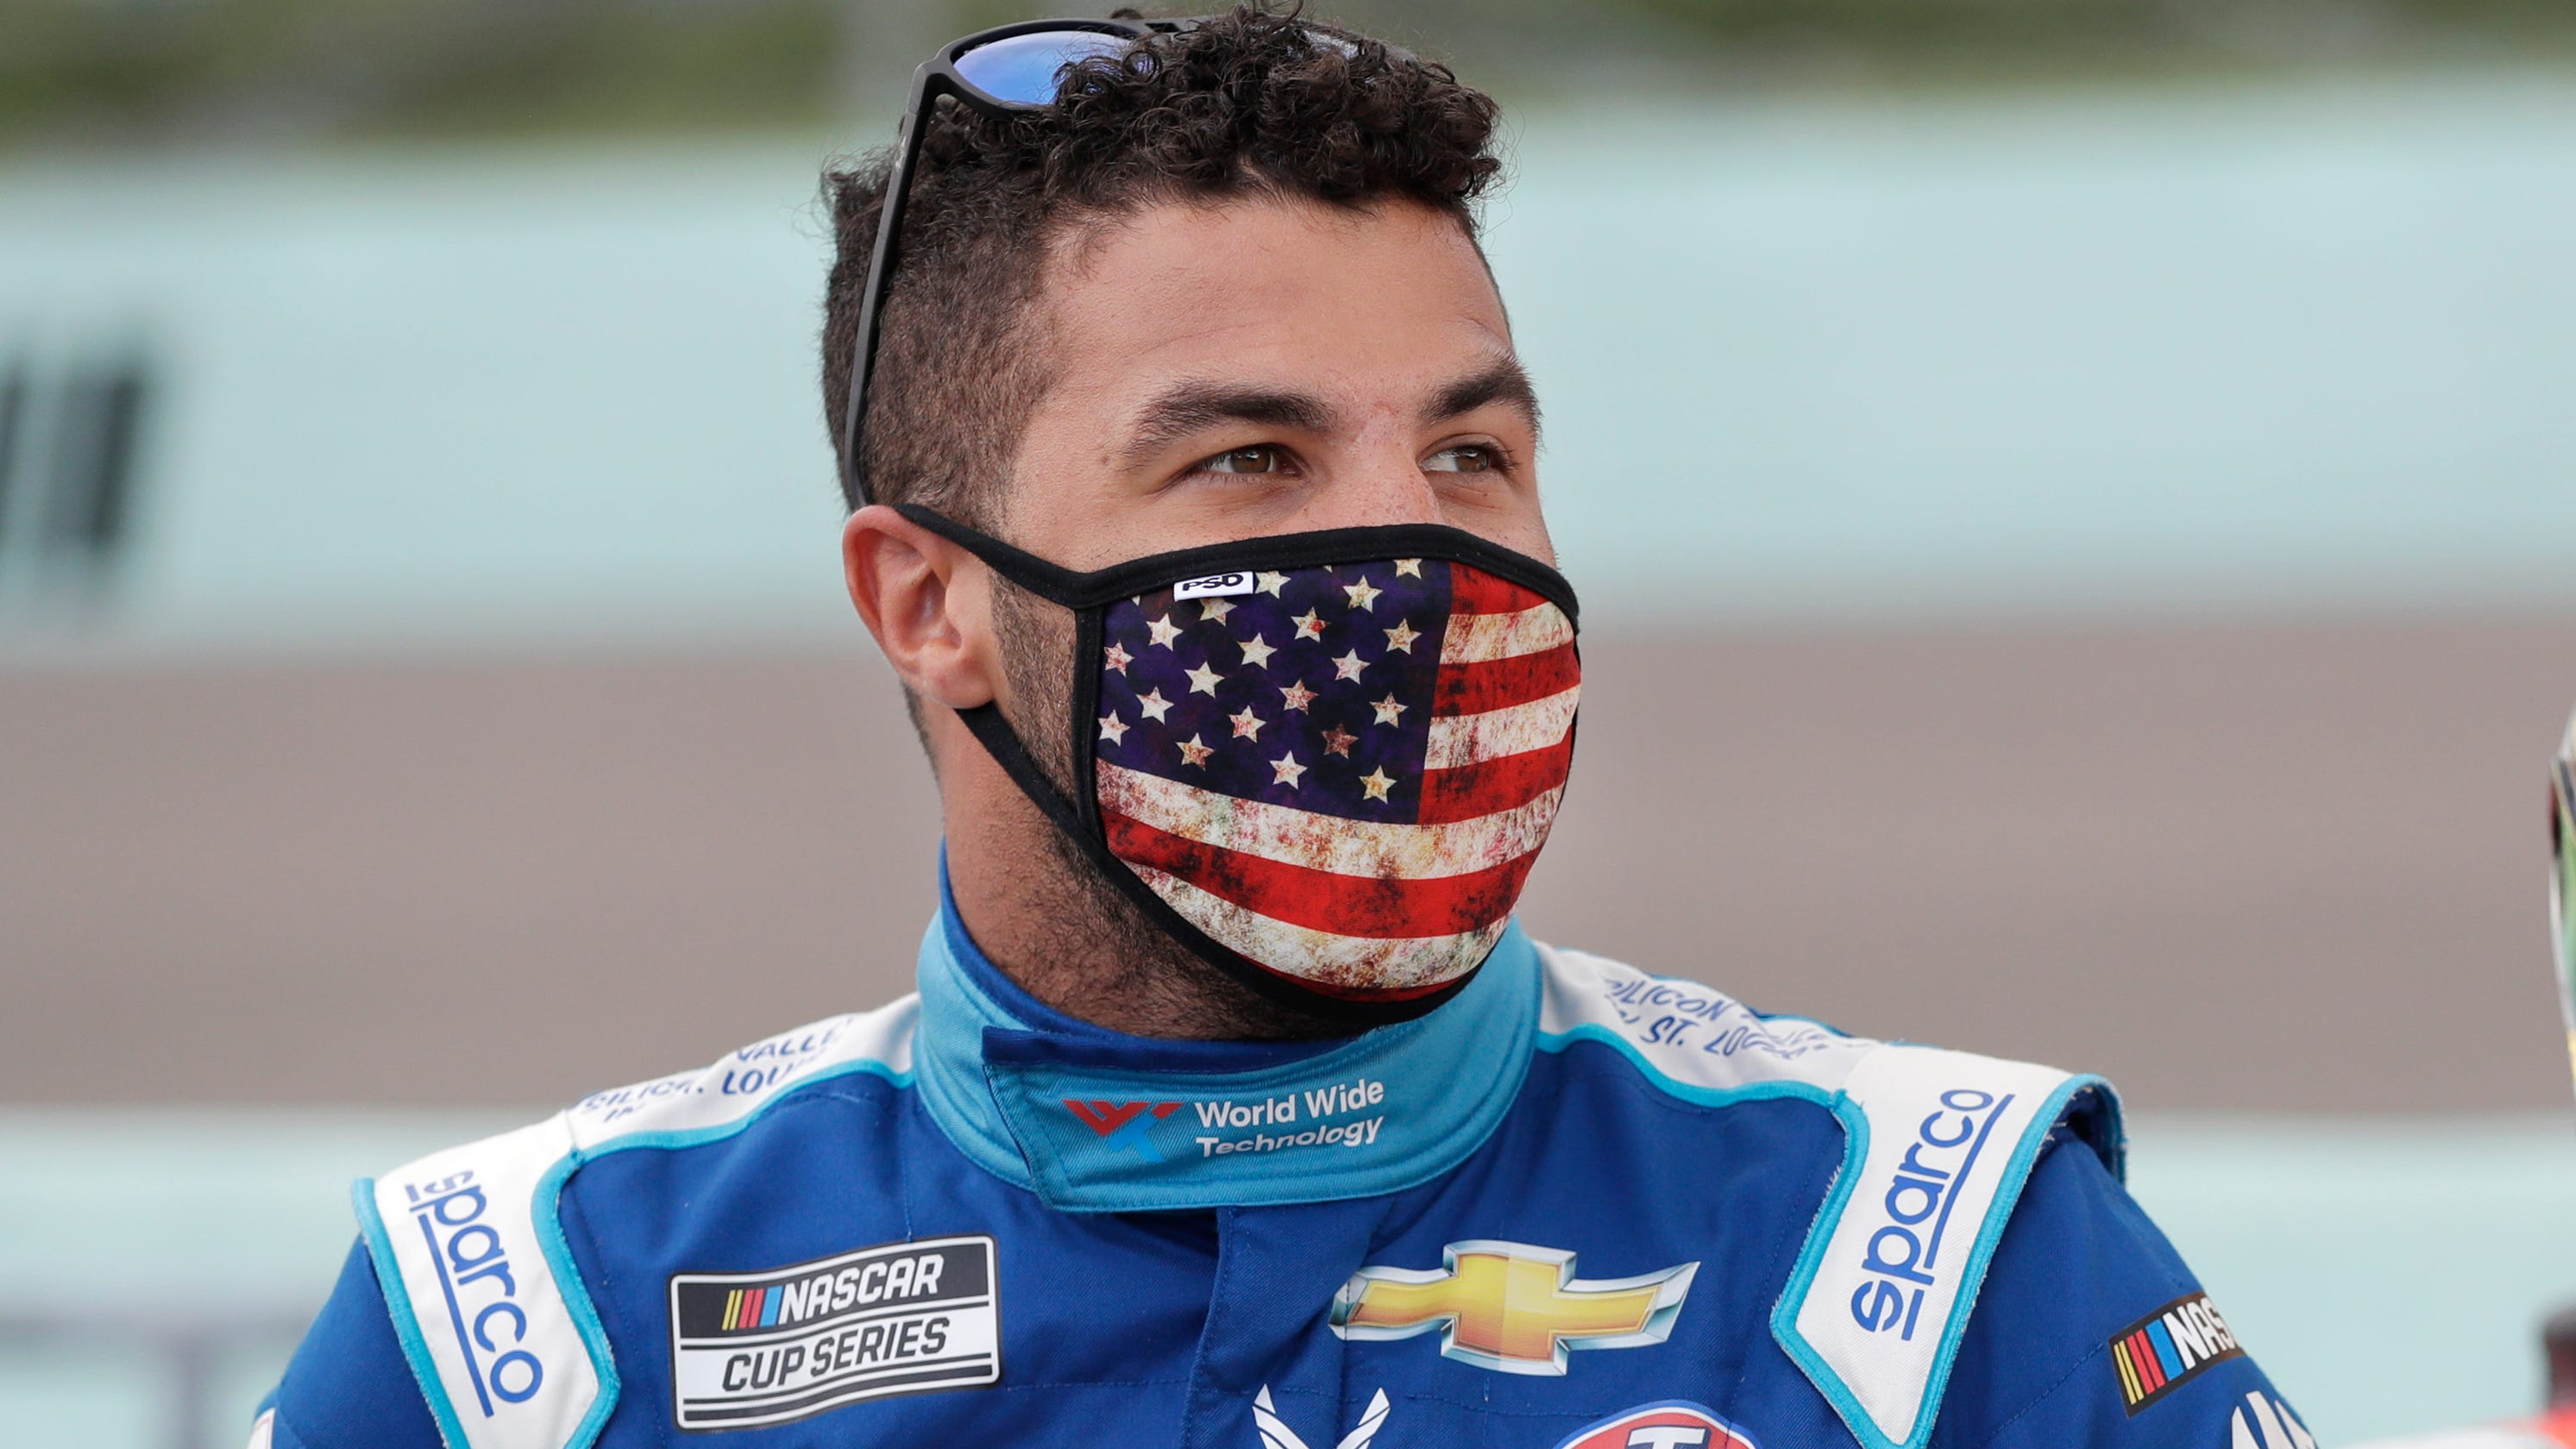 Bubba Wallace says he's exhausted after noose incident at Talladega